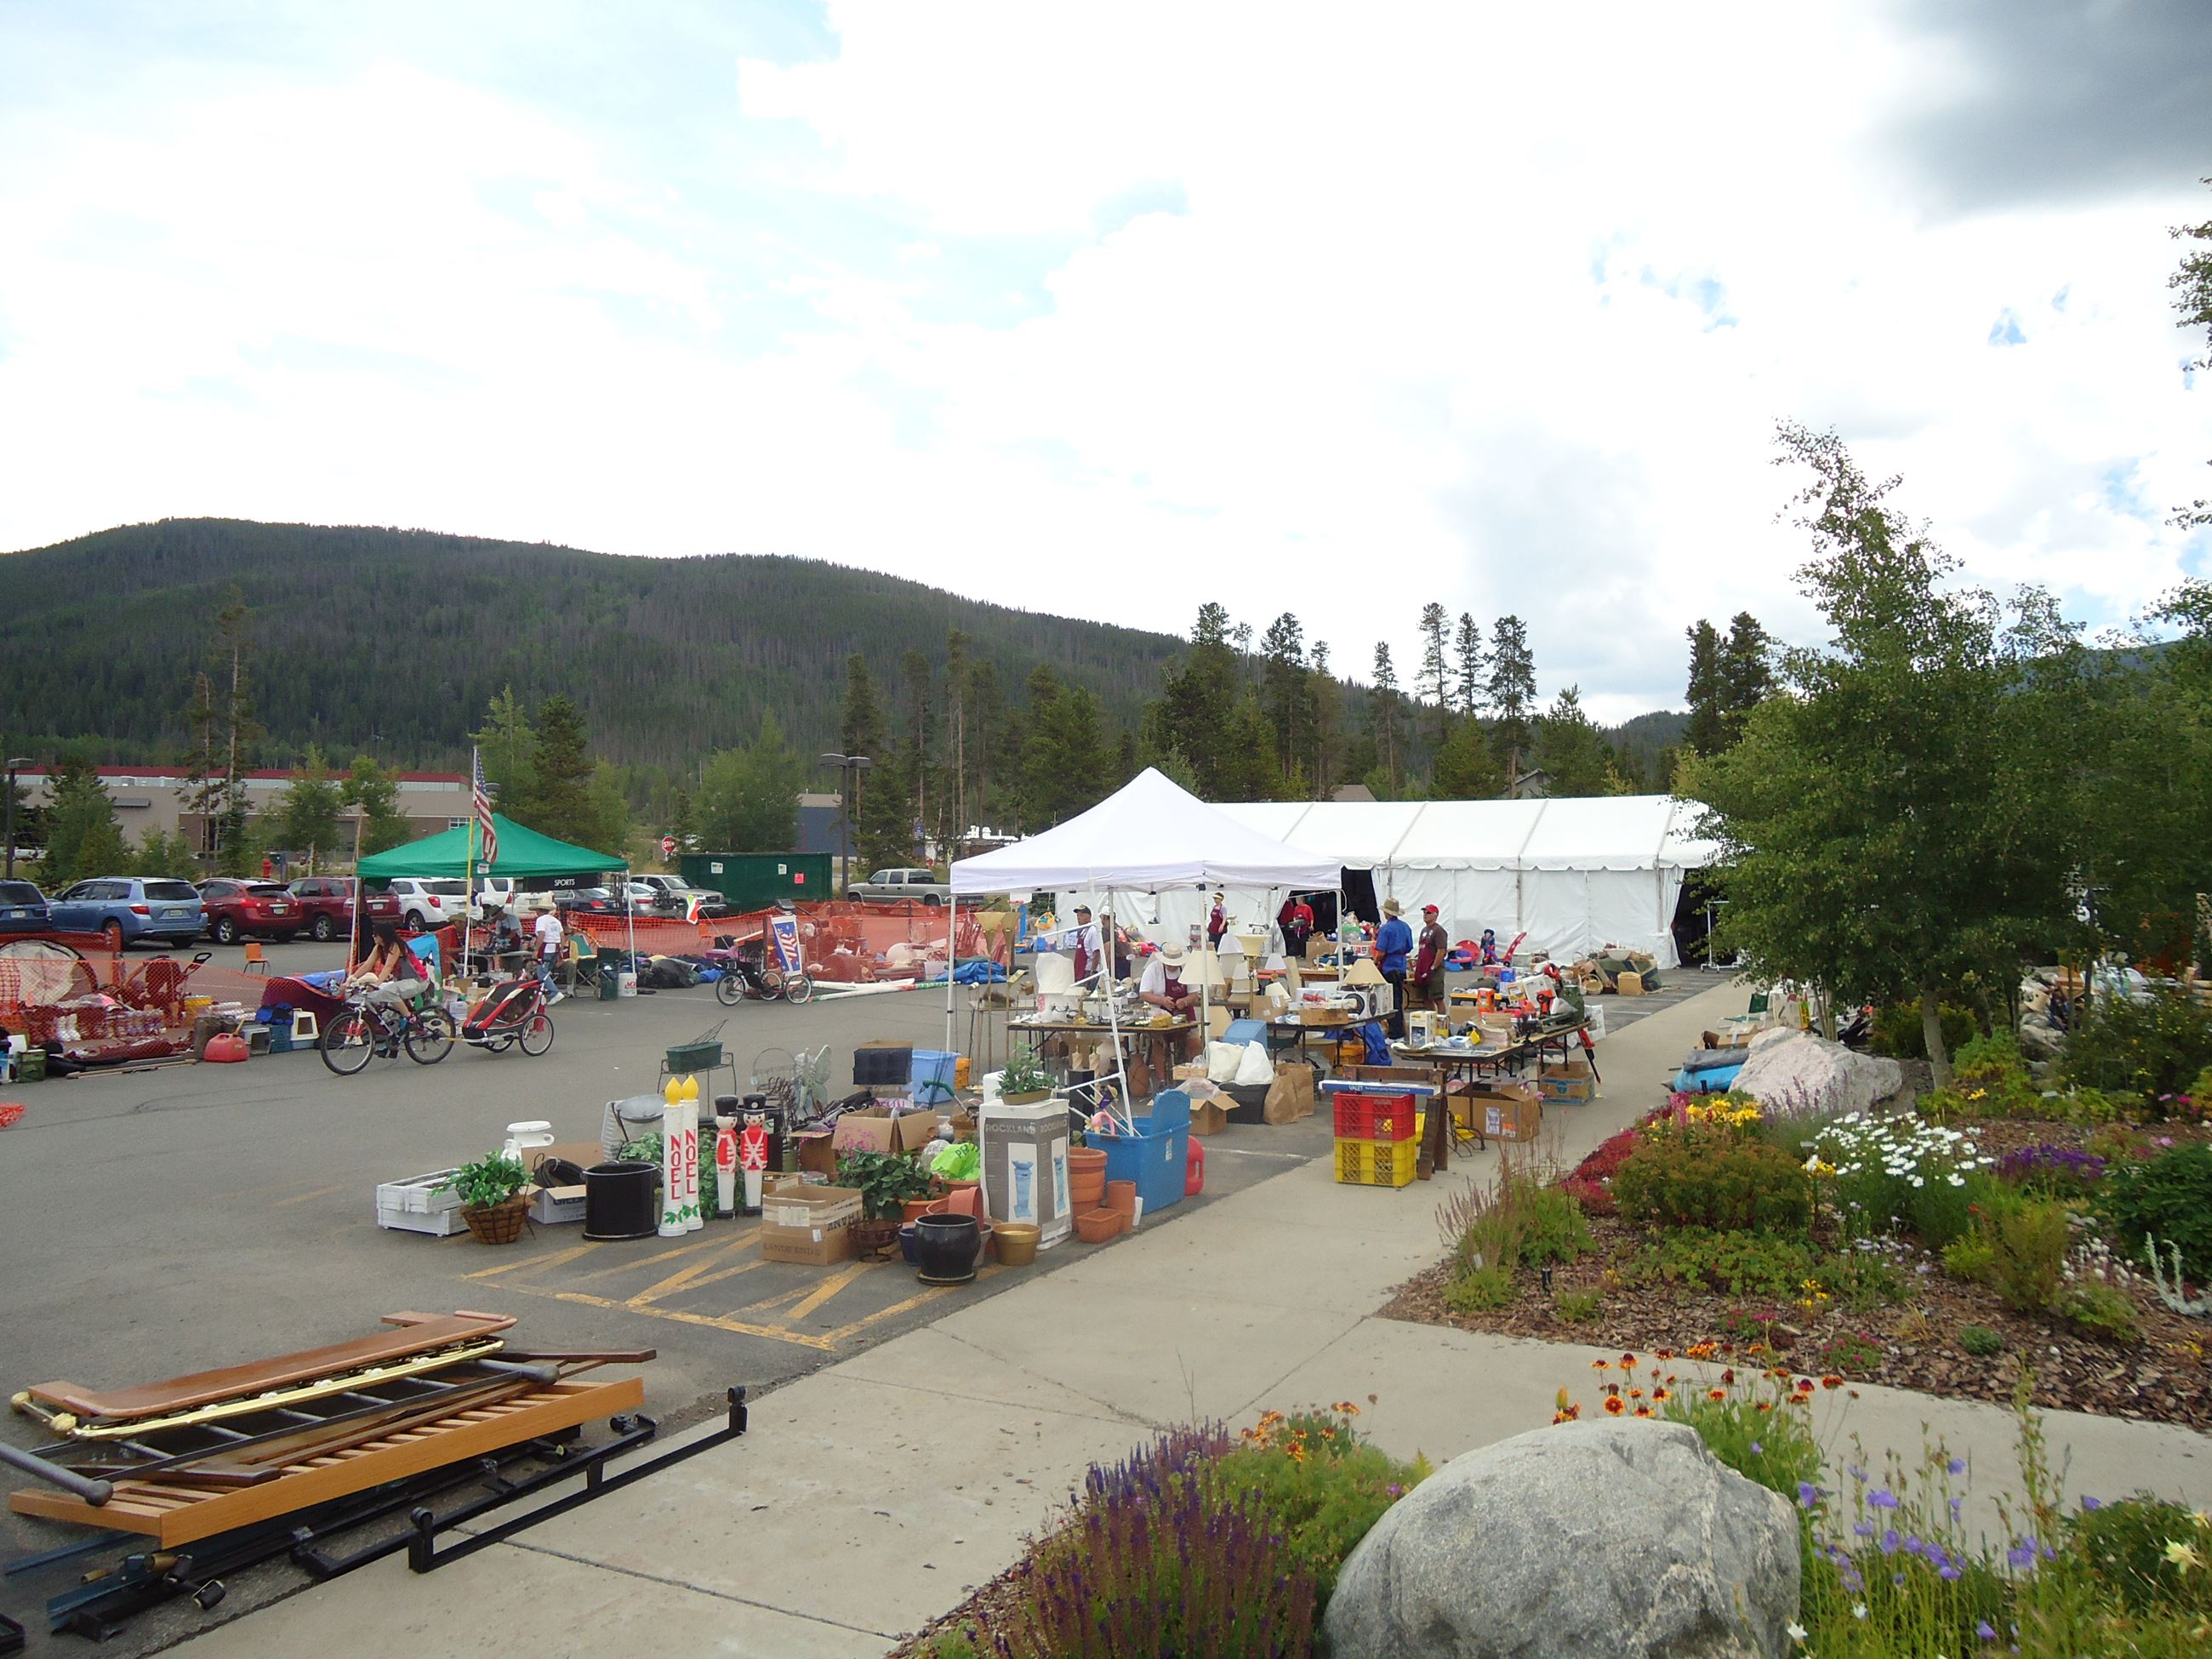 View of the parking lot at the Summit County Community and Senior Center during the Rummage Sale